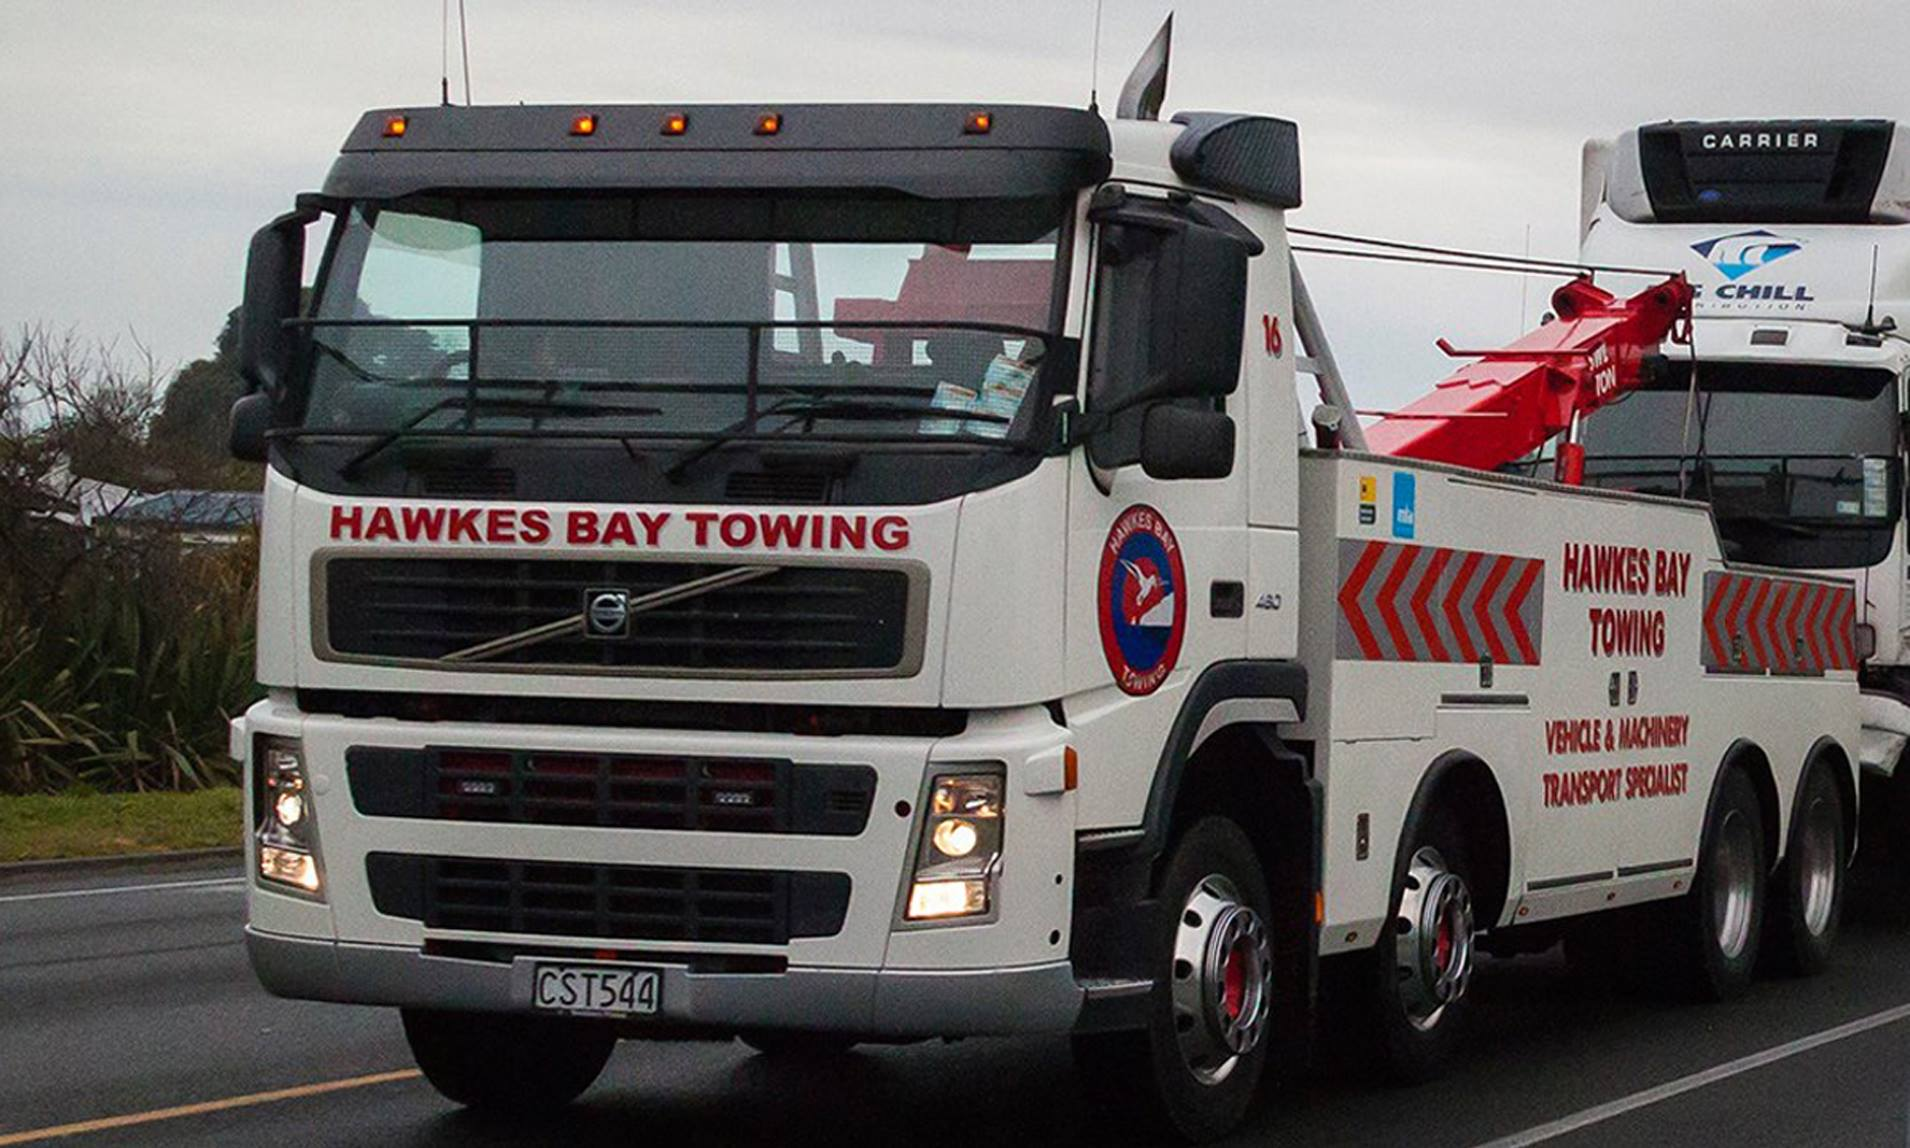 Hawkes Bay Towing